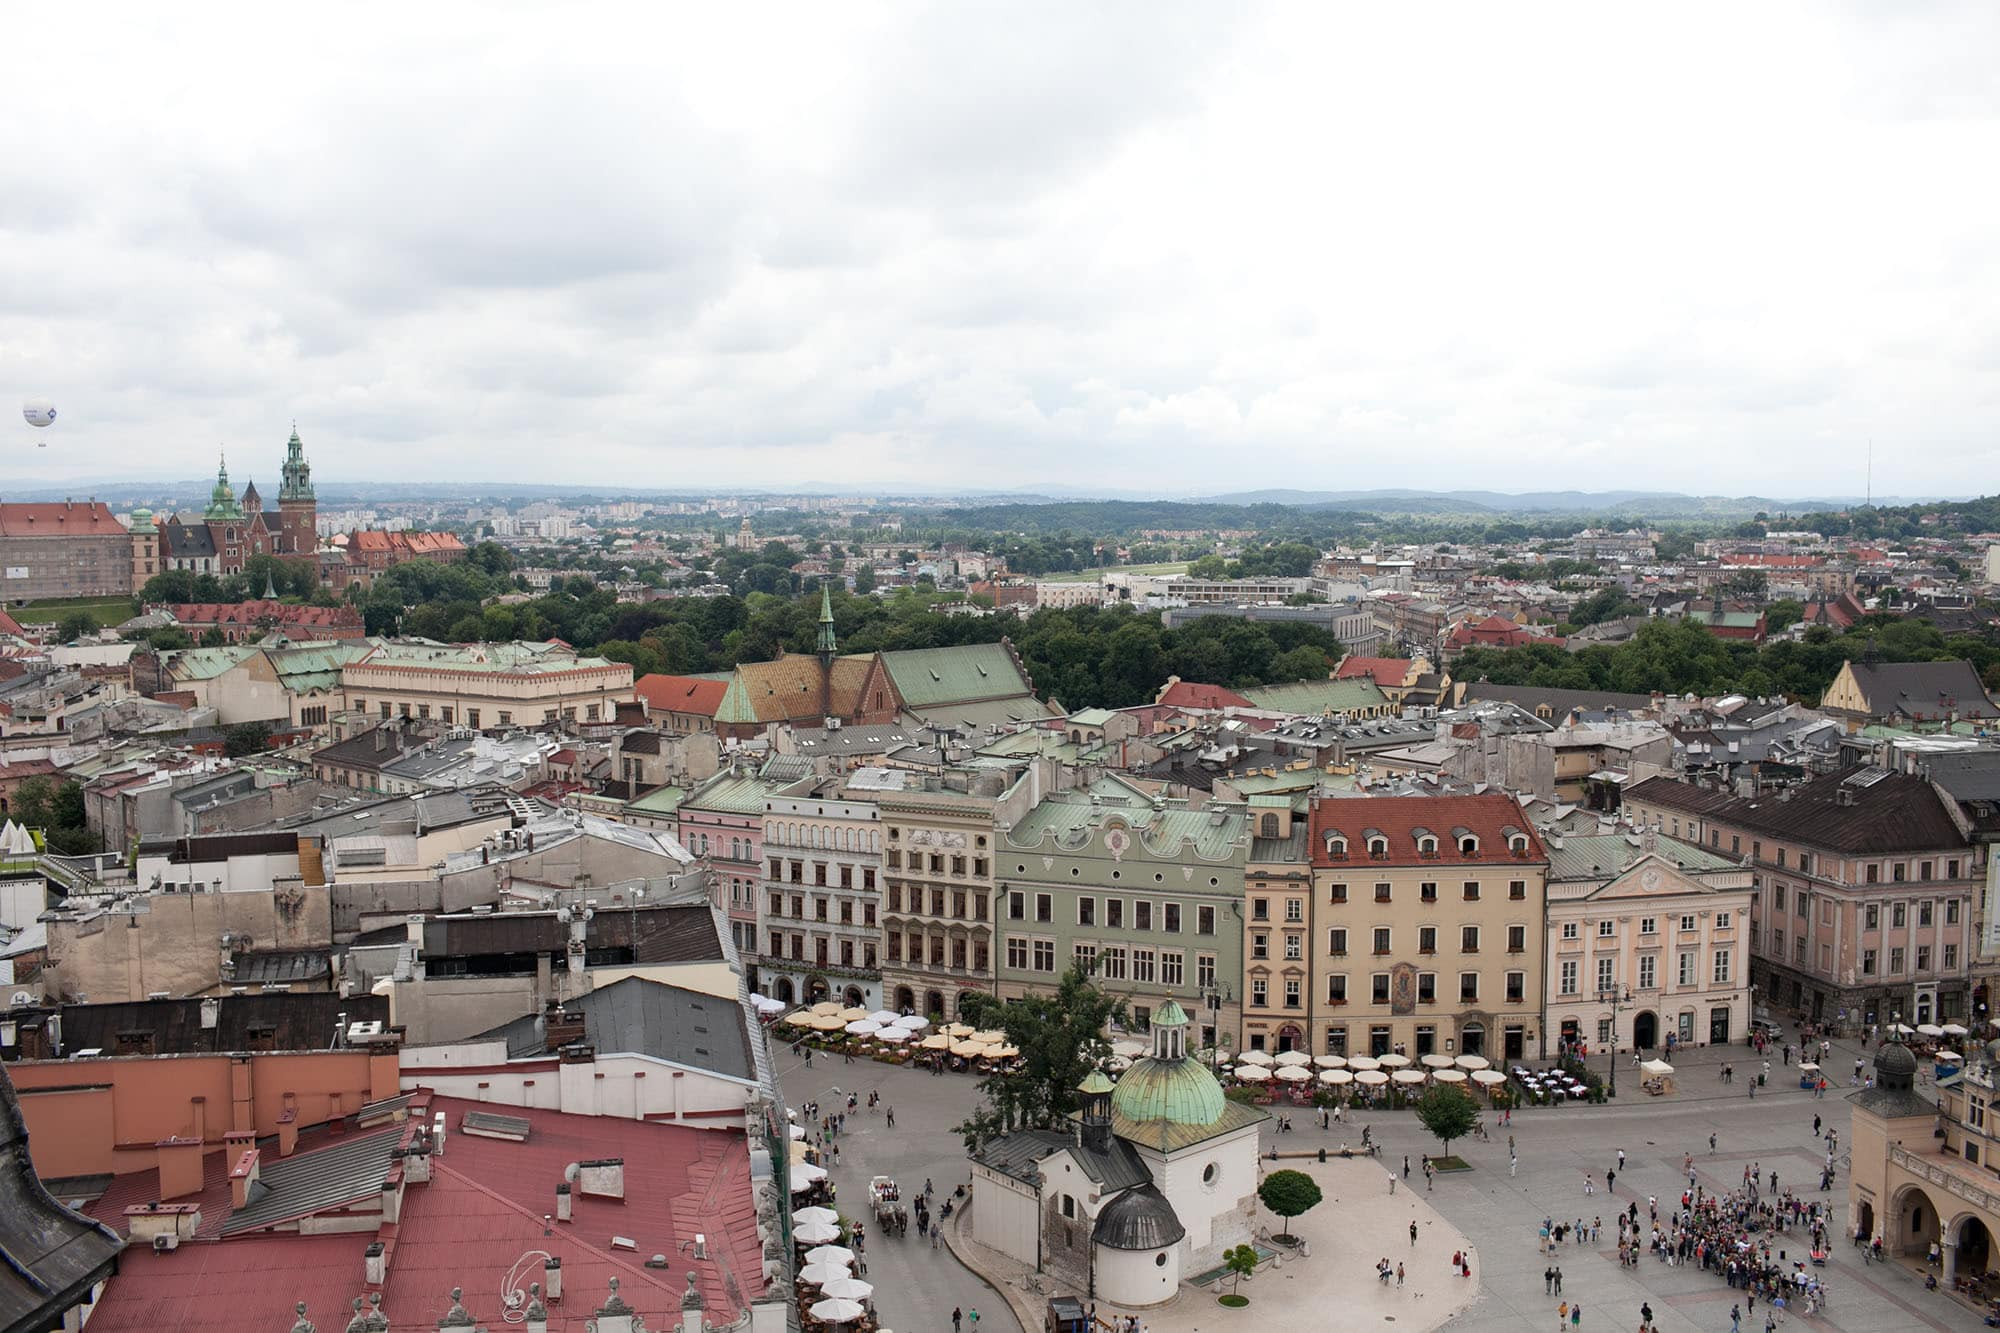 View from the church tower in Krakow, Poland.